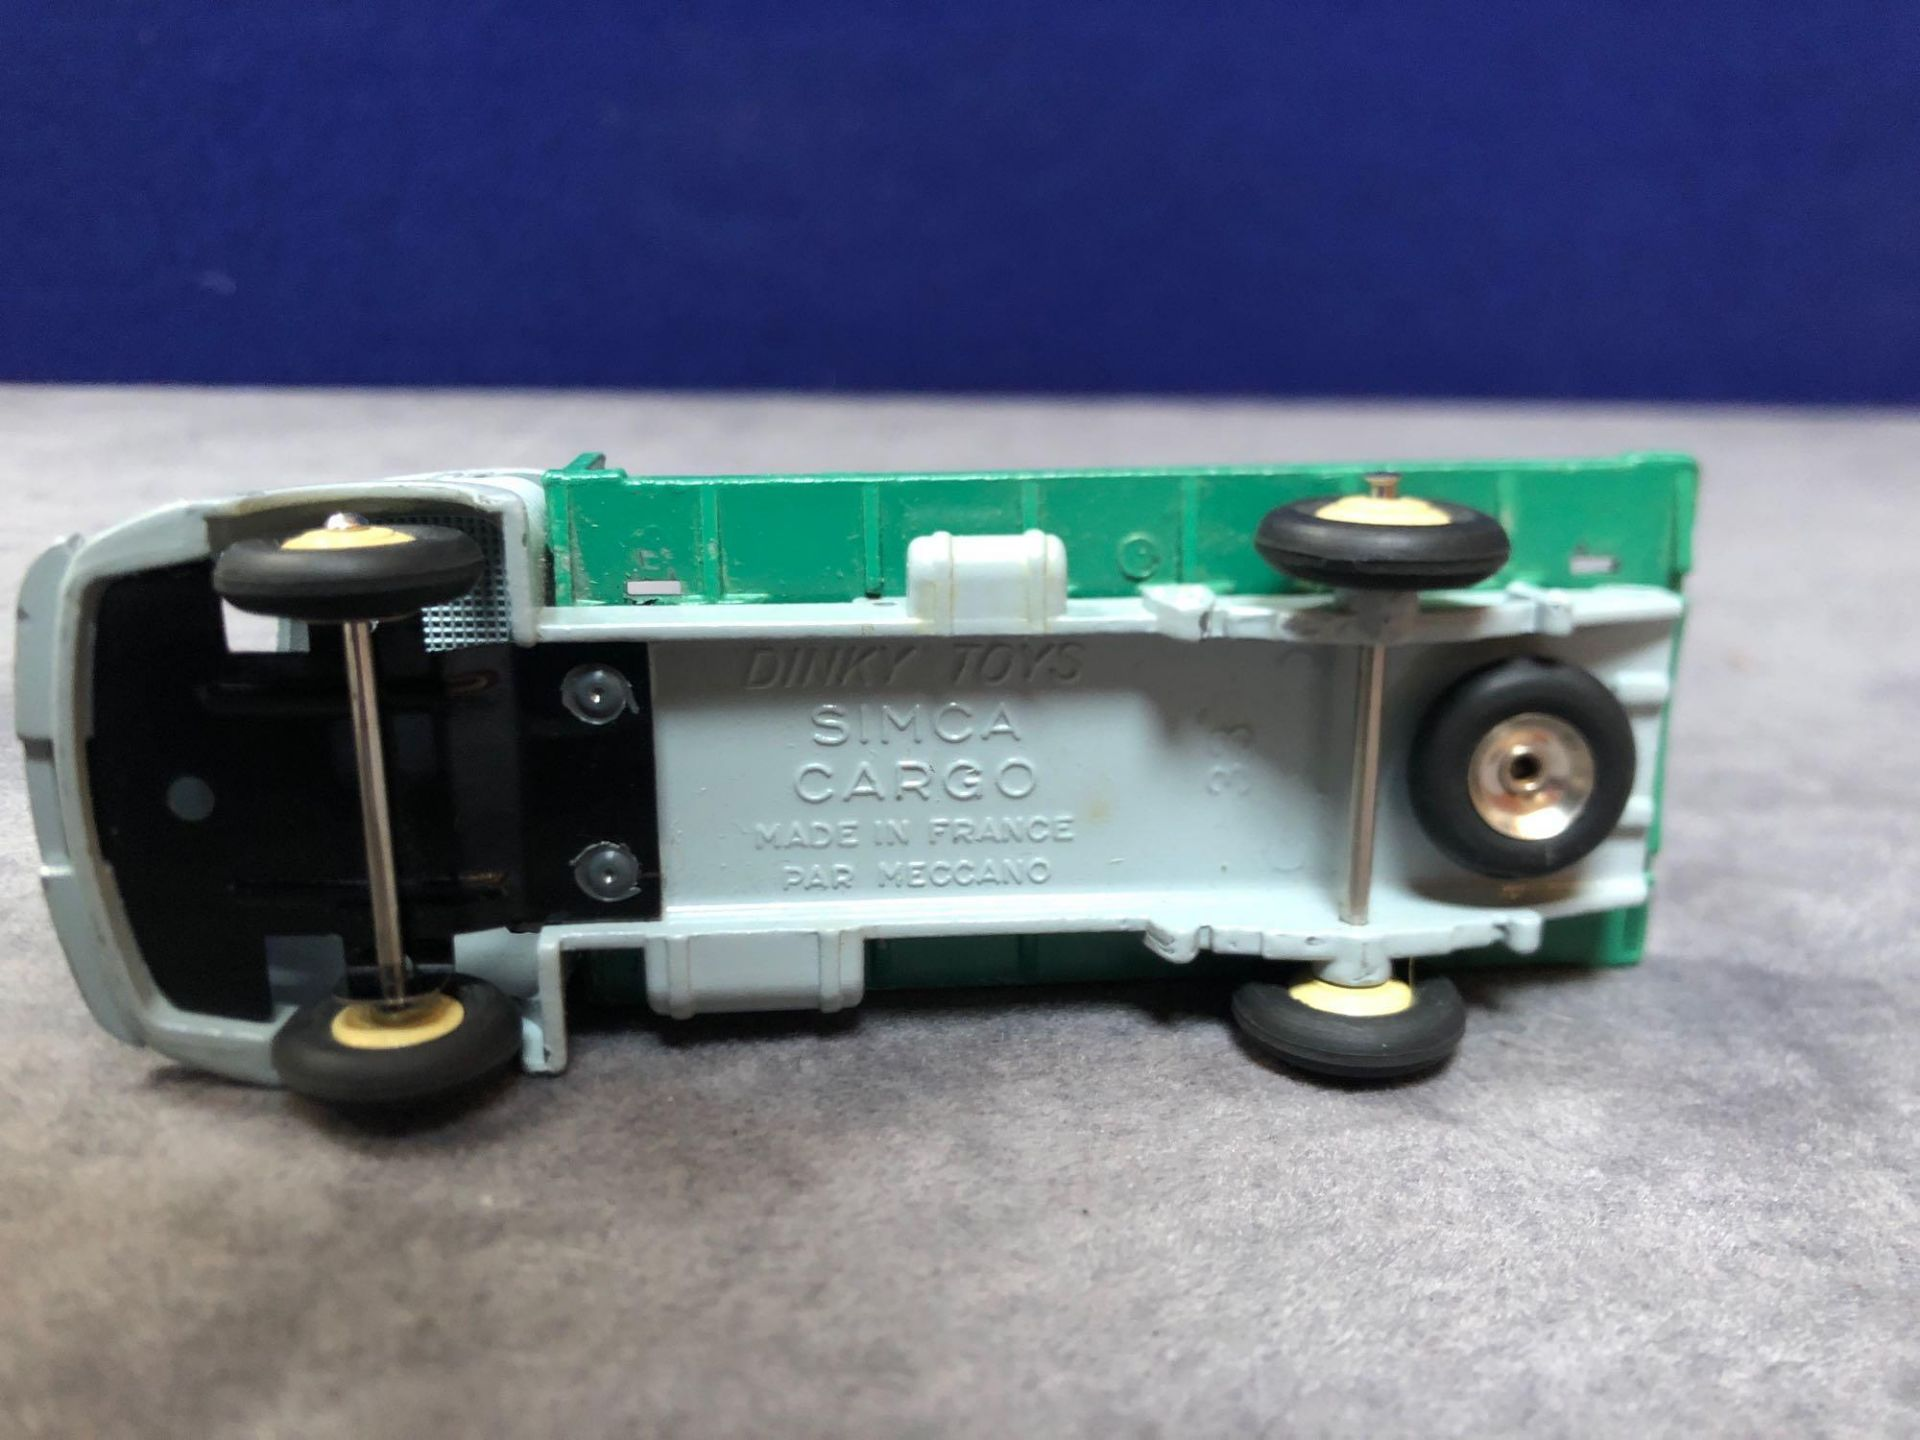 Dinky France #33C Simca Glass Truck Grey/Dark Green - Renumbered 579 Mint In Very Good Firm Box - Image 4 of 4